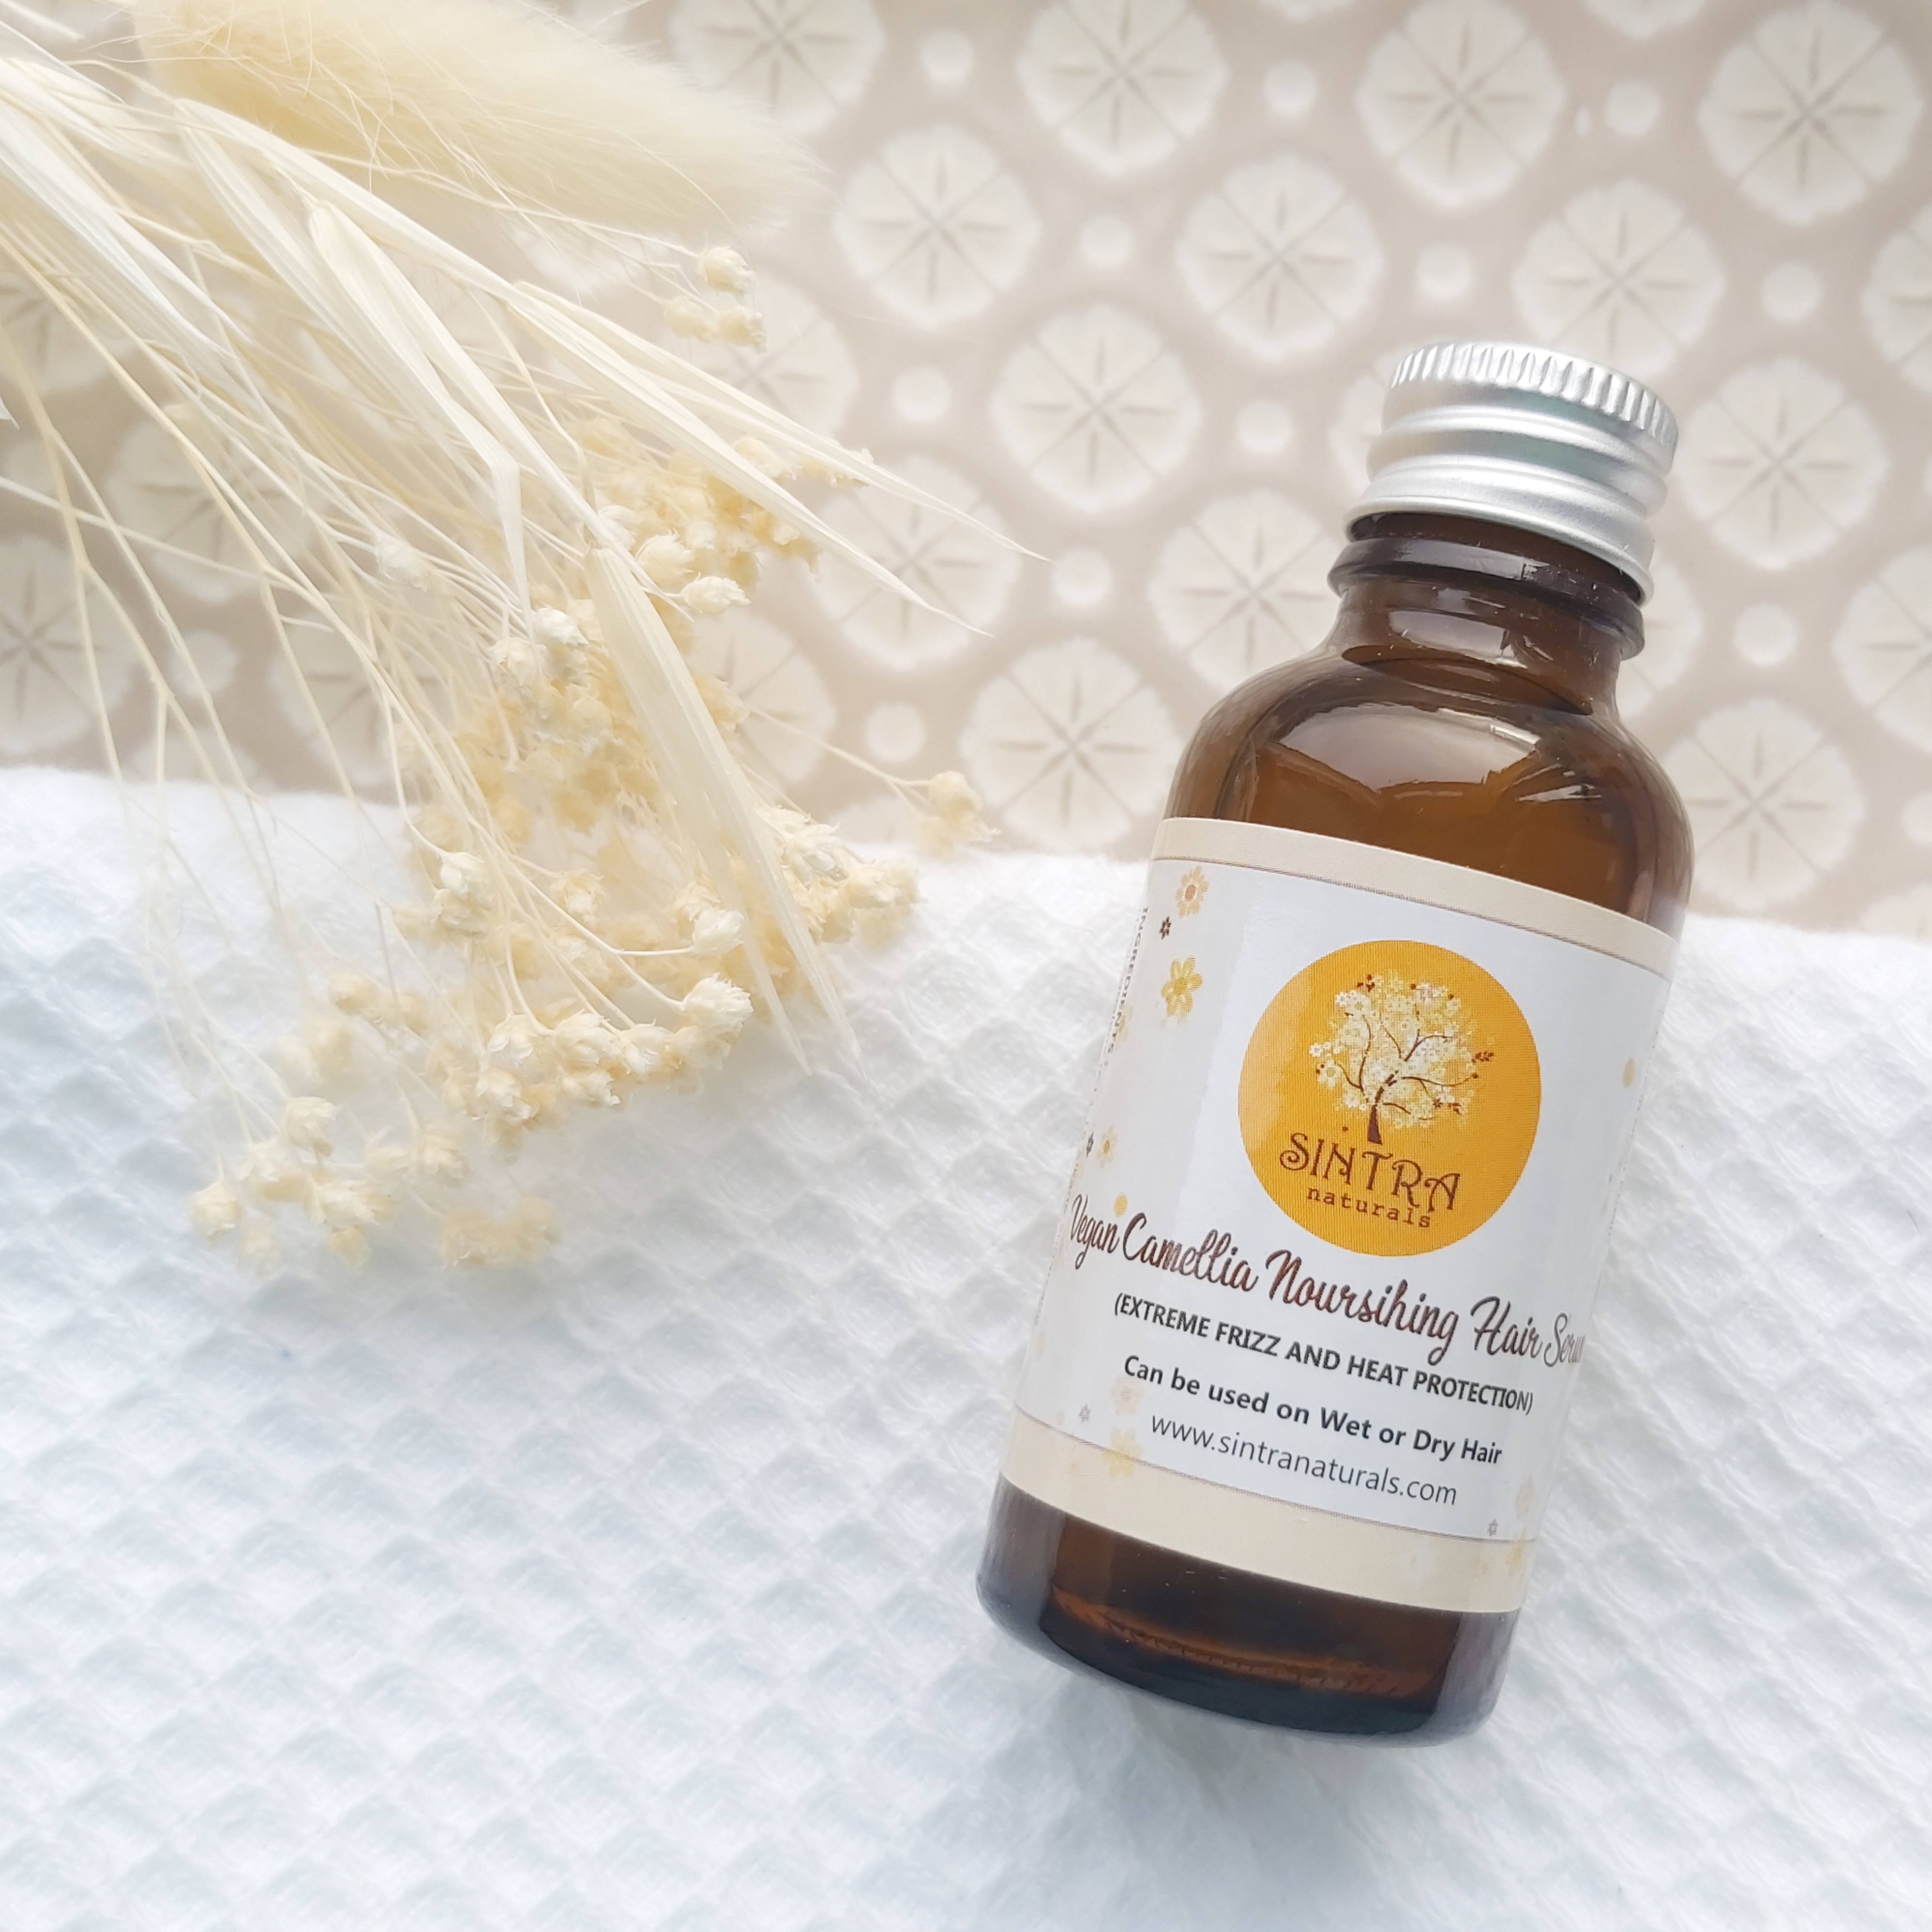 Sintra Naturals Vegan Camellia Nourishing Hair Serem featured in The Natural Beauty Box May 2021 on a patterned plate, waffle white towel and natural foliage - Review by Beauty Folio